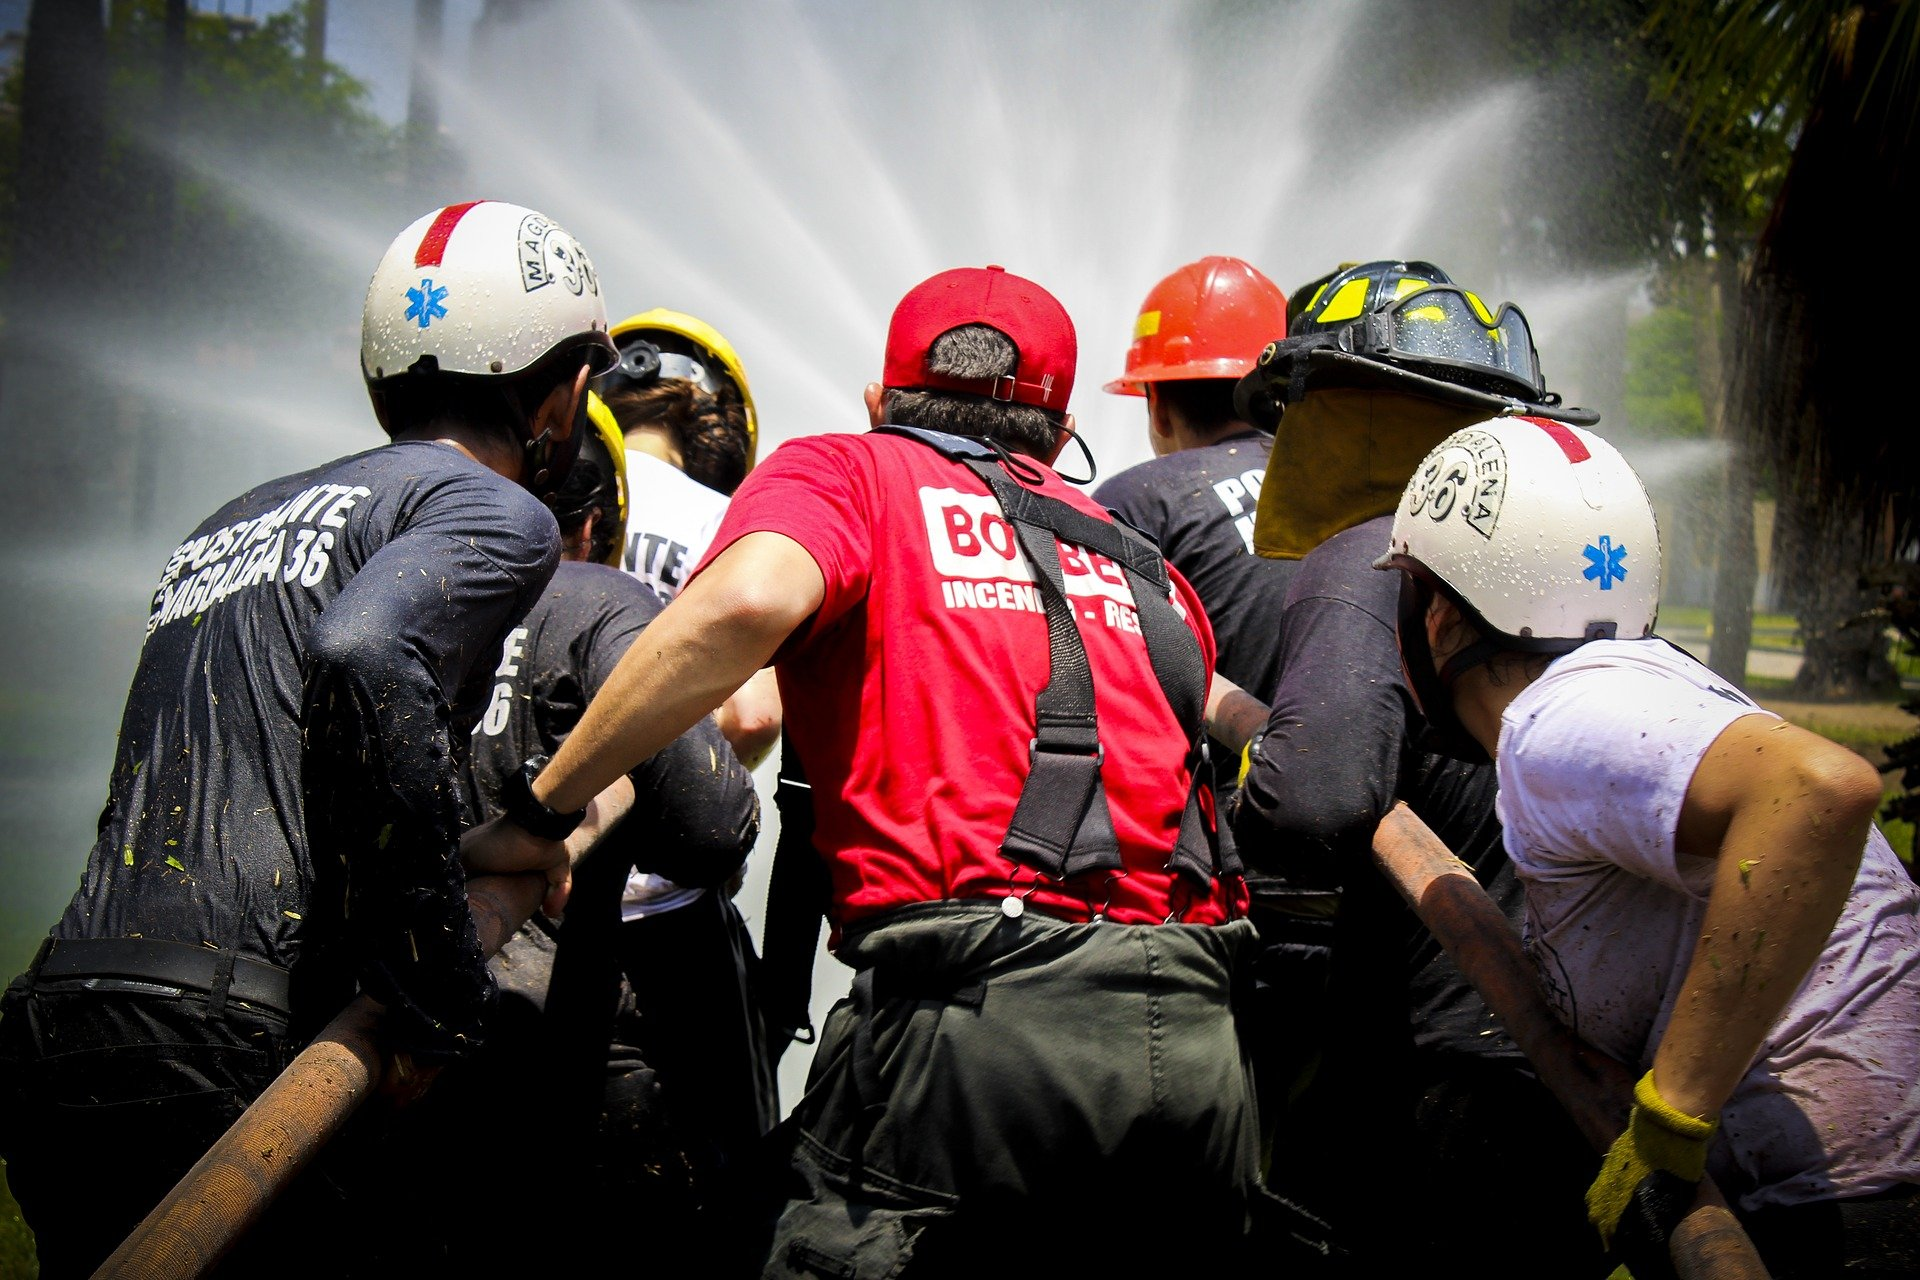 Pictured - An image of fire and water rescue teams wearing helmets and pulling a hose | Source: Pixabay